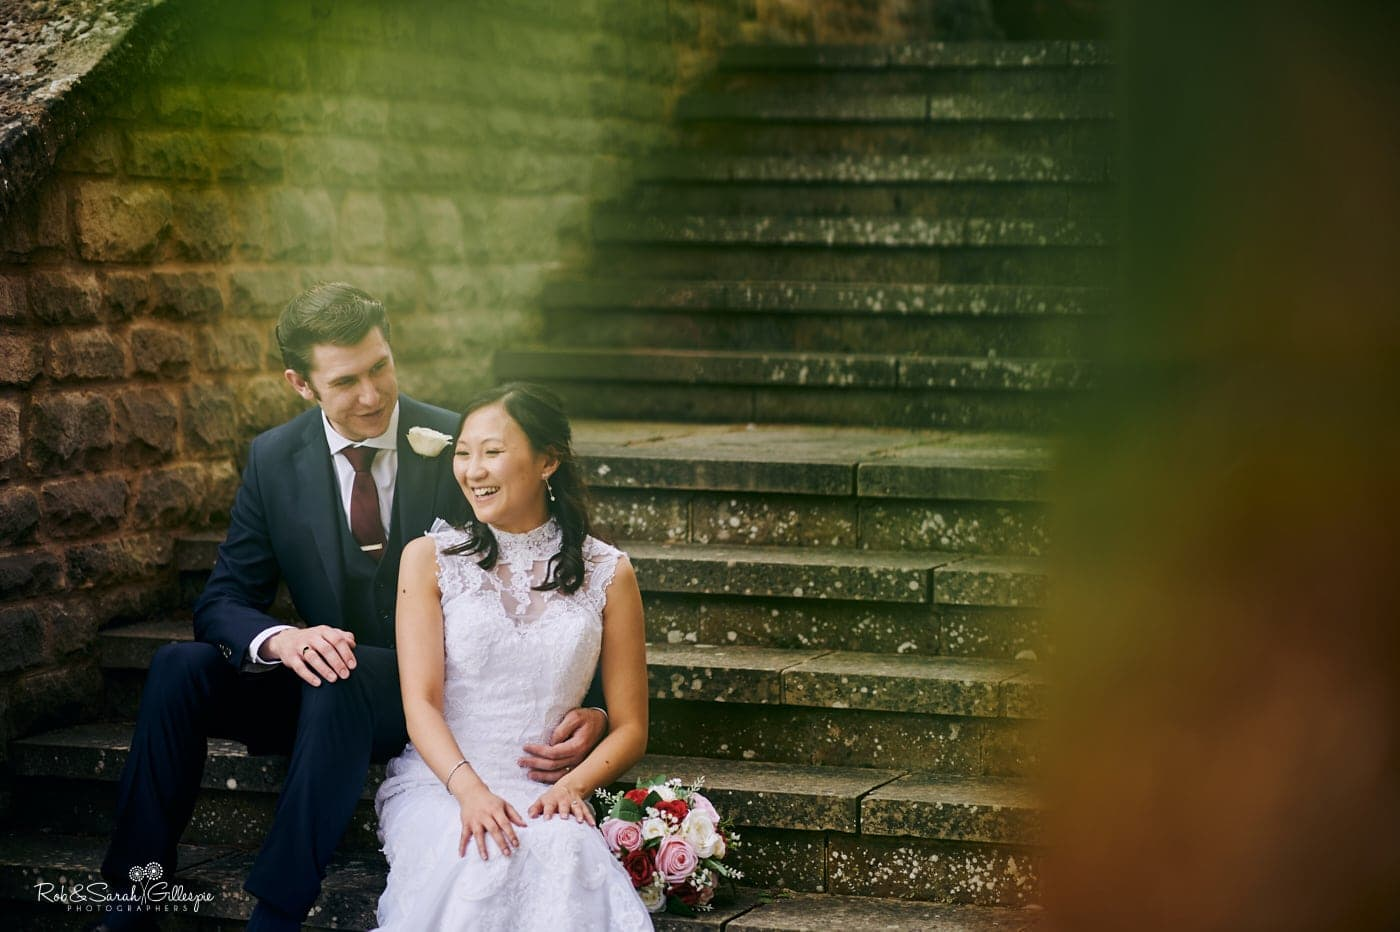 Bride and groom laughing together while sitting on steps at Mallory Court